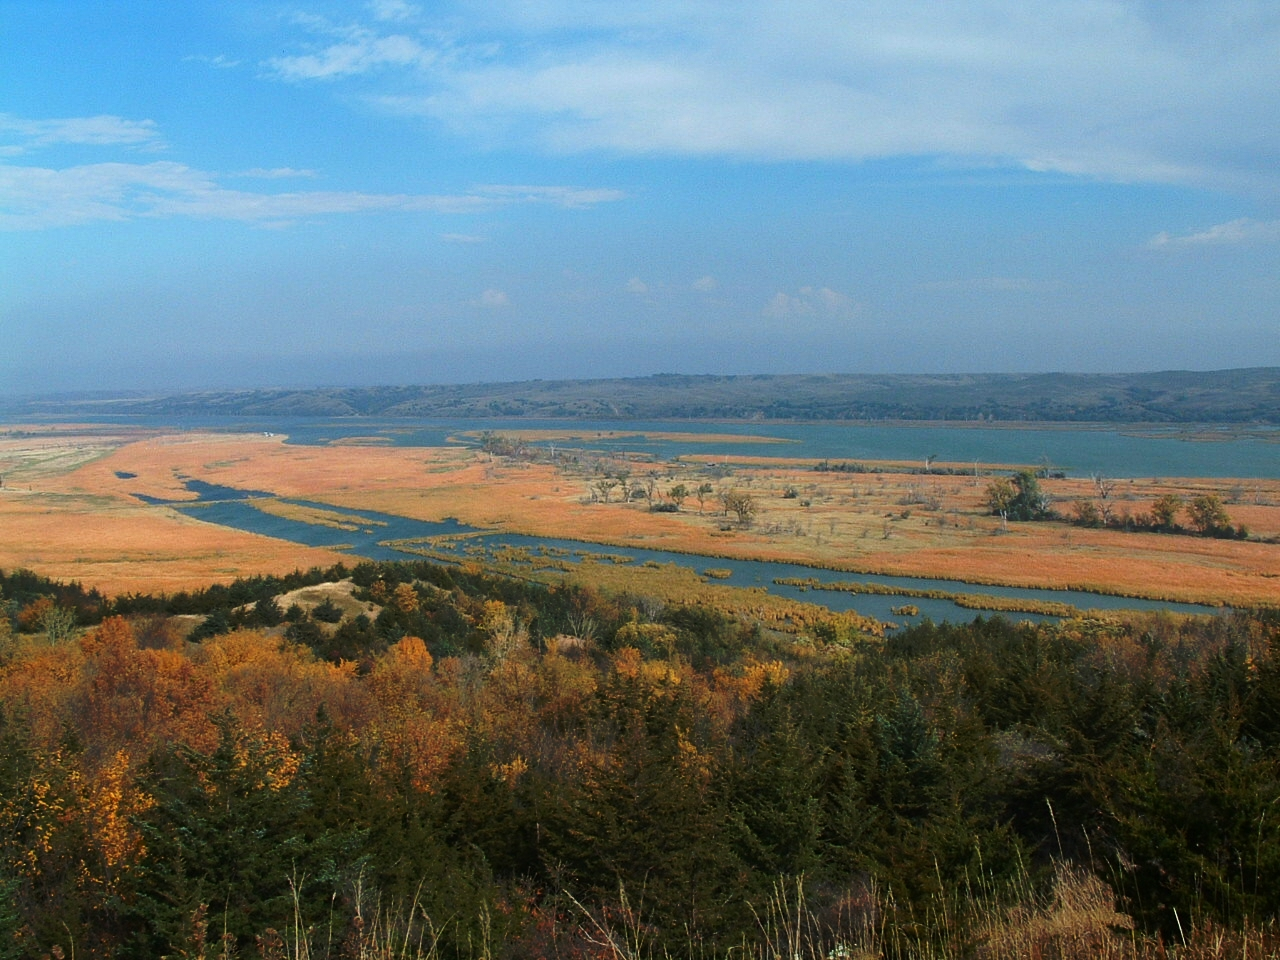 View of the 39 mile reach of Missouri National Recreational River from Niobrara State Park